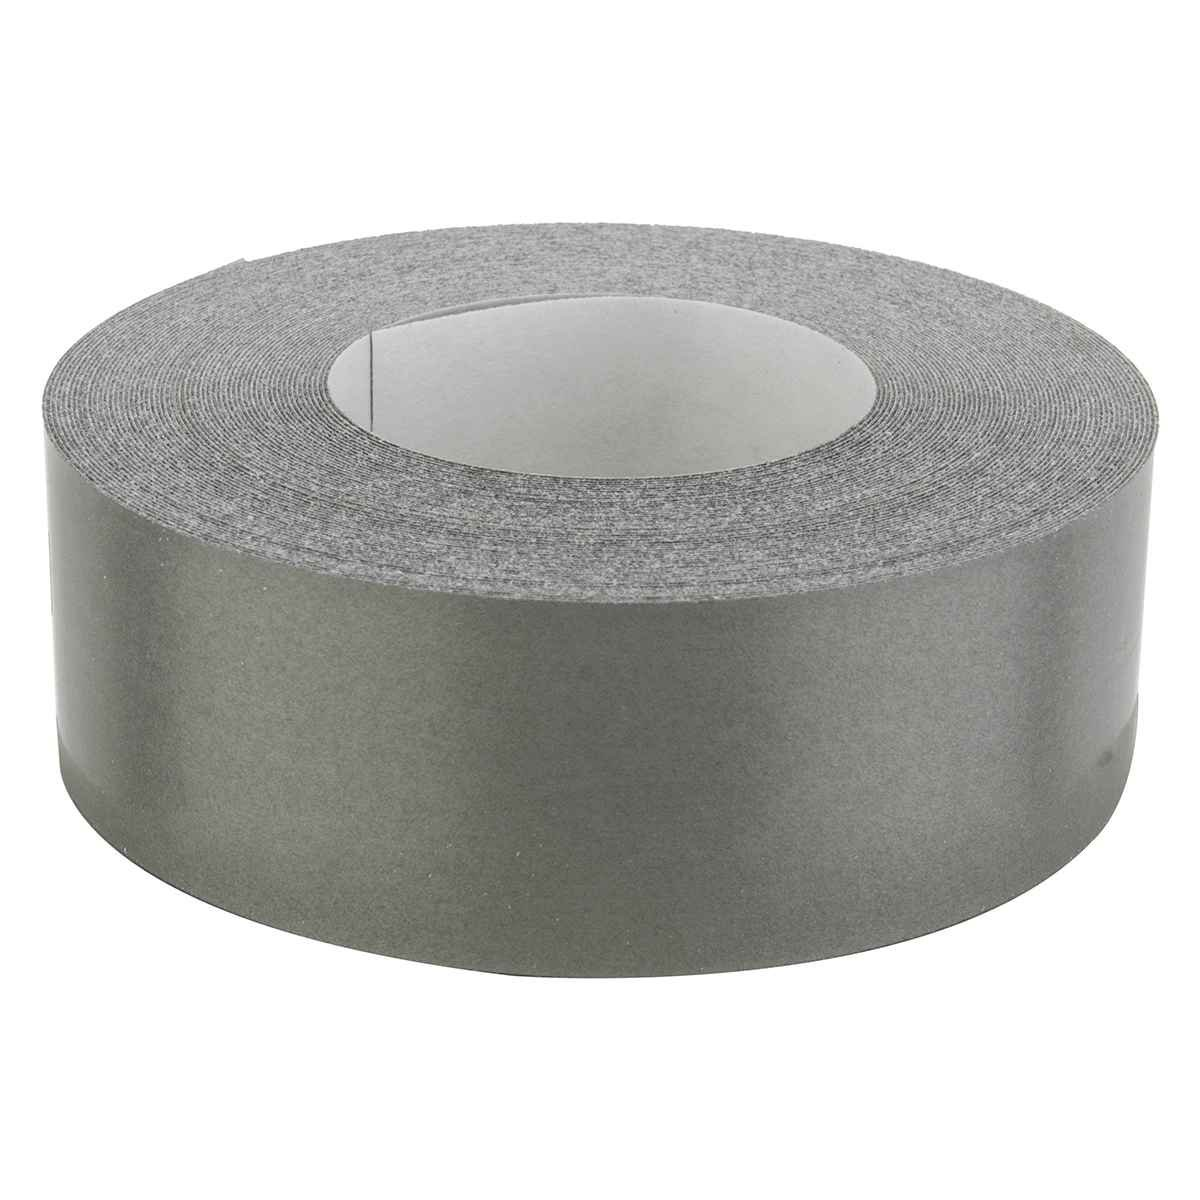 Lightweight Safety Reflector Flex Tape X-Wide, 400-Inch by Lightweight Safety Limited   B0091X9TUE